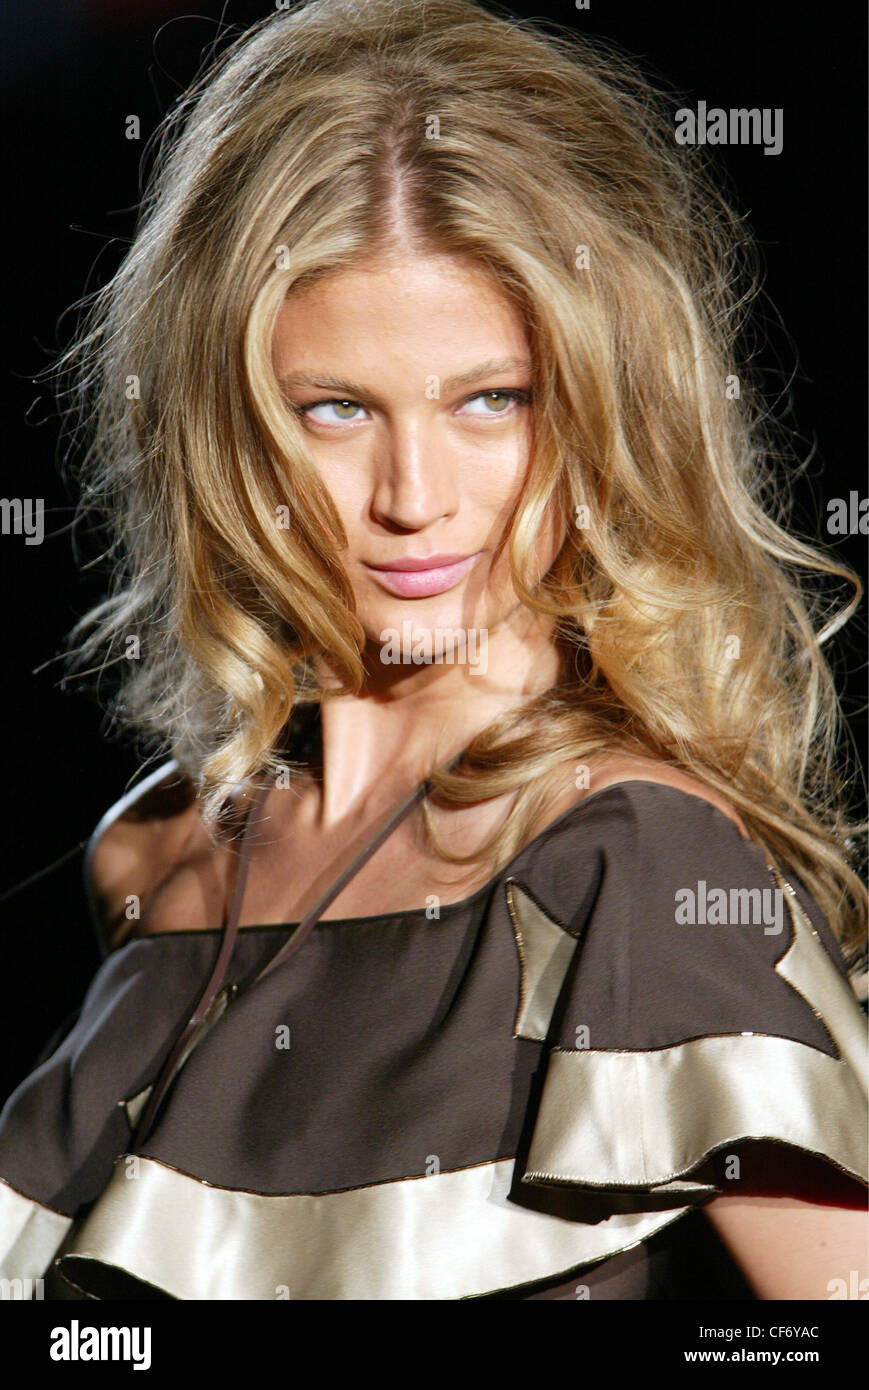 DSquared Milan Ready to Wear S S Blonde female big tousled hair wearing satin brown frilly outfit, accessorised - Stock Image